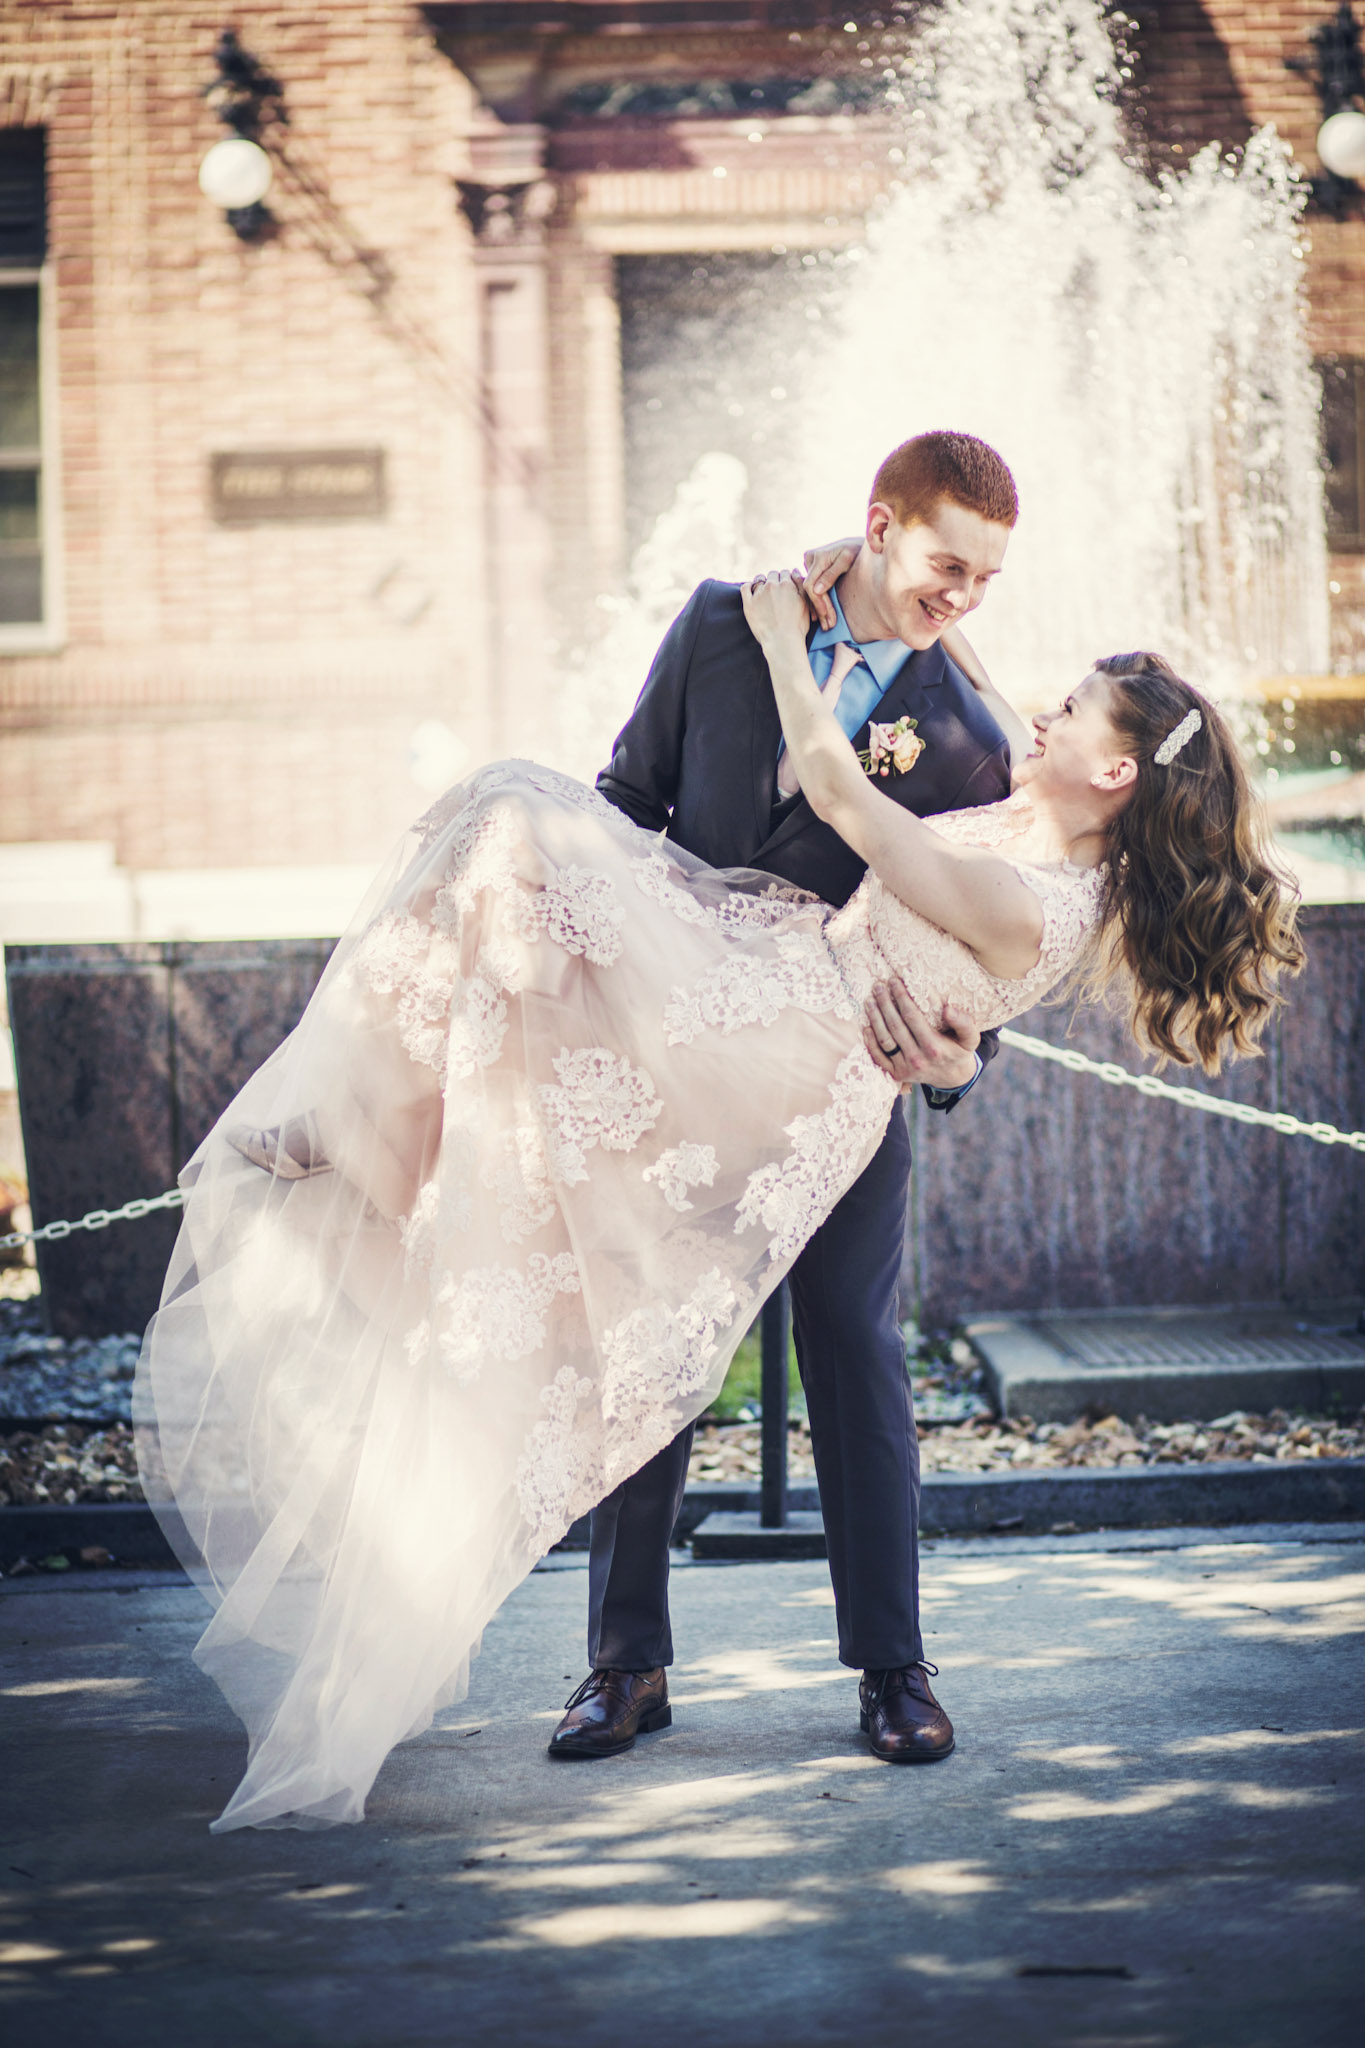 Kansas_City_Small_Wedding_Venue_Elope_Intimate_Ceremony_Budget_Affordable_Kelsey&Colby-184b.jpg